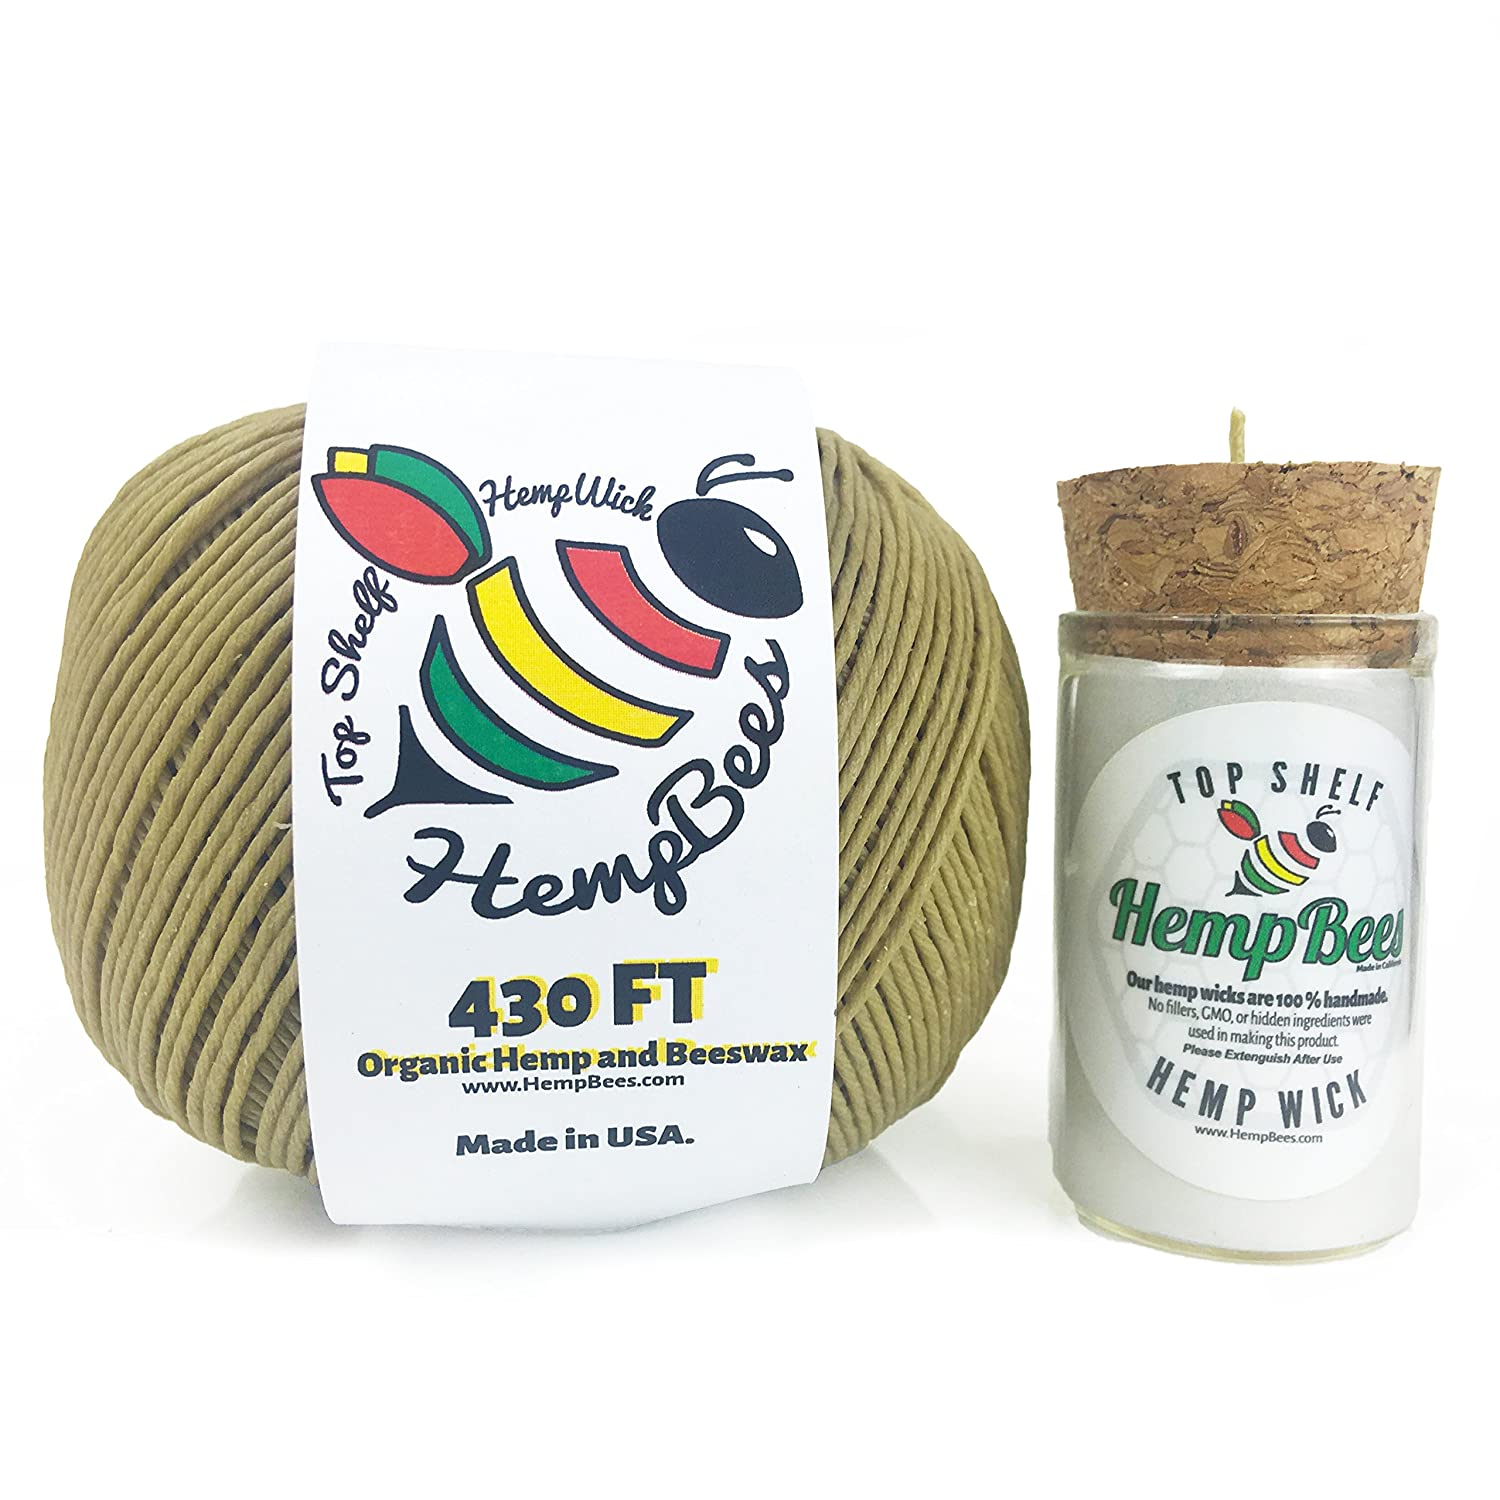 430 Ft Organic Hemp Wick Spool Roll Waxed & Coated w/ Natural Beeswax - SLOW BURN & LONG LASTING - Includes Glass Dispenser 20 - 30 ft Holder is Easy to Use & Pass. Hempwick STAYS FRESH & TANGLE-FREE HempBees Hemp Wick